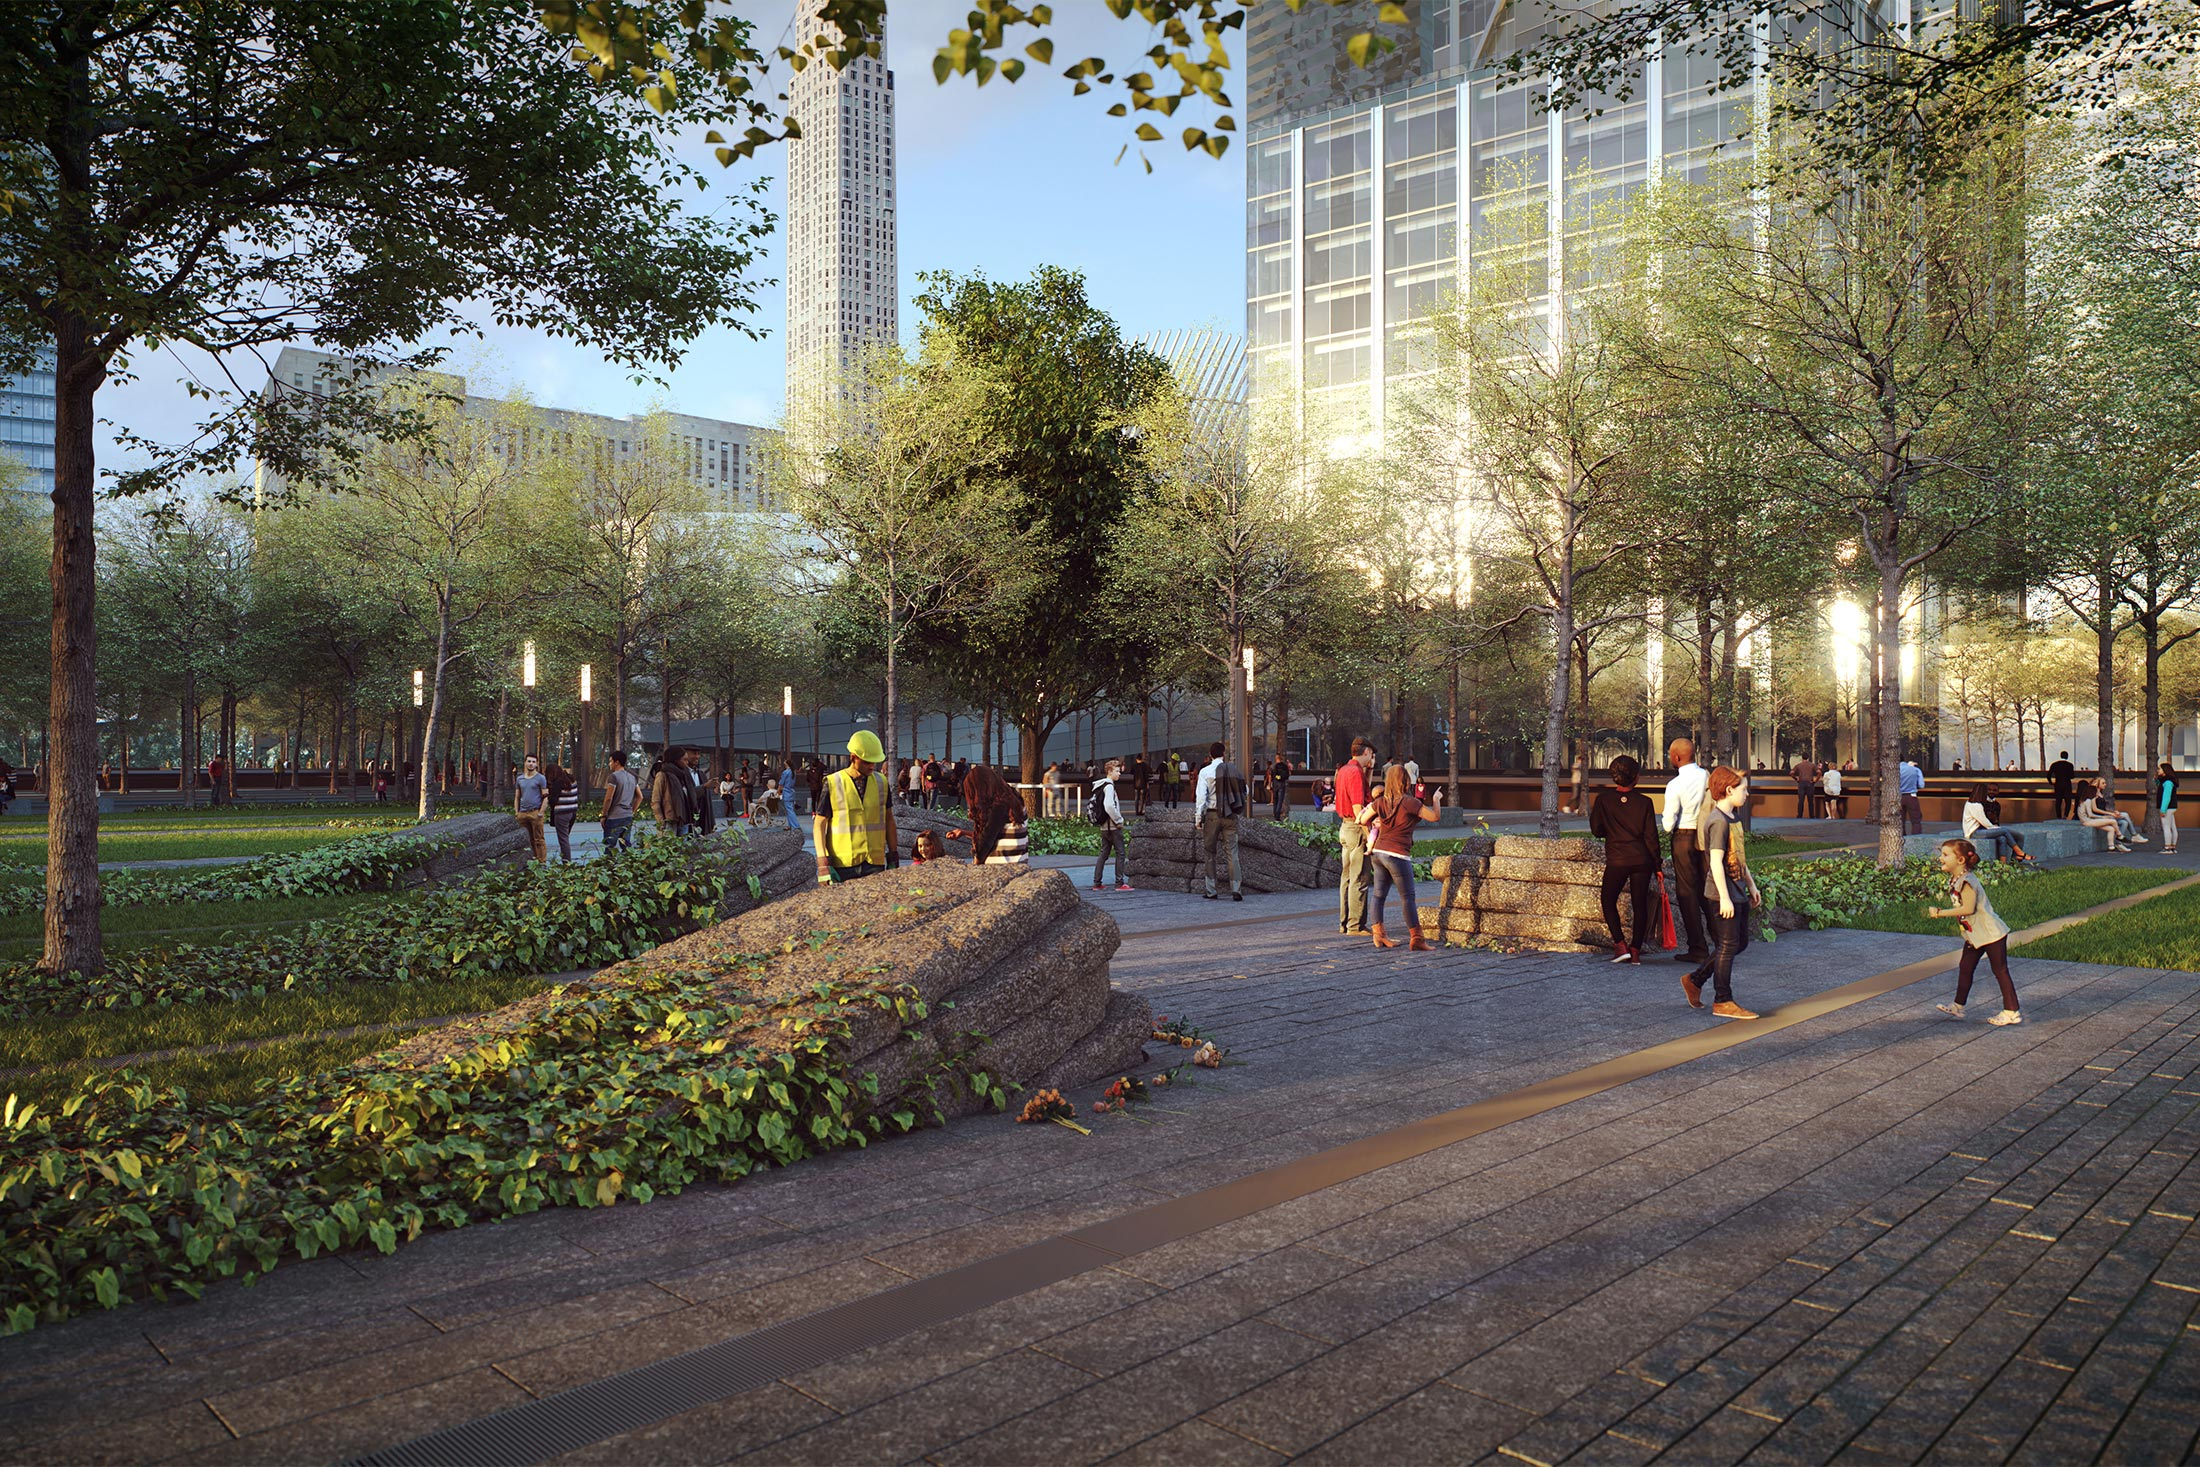 Architectural Rendering of the World Trade Center 9/11 Memorial Glade project located in the Financial District, New York City